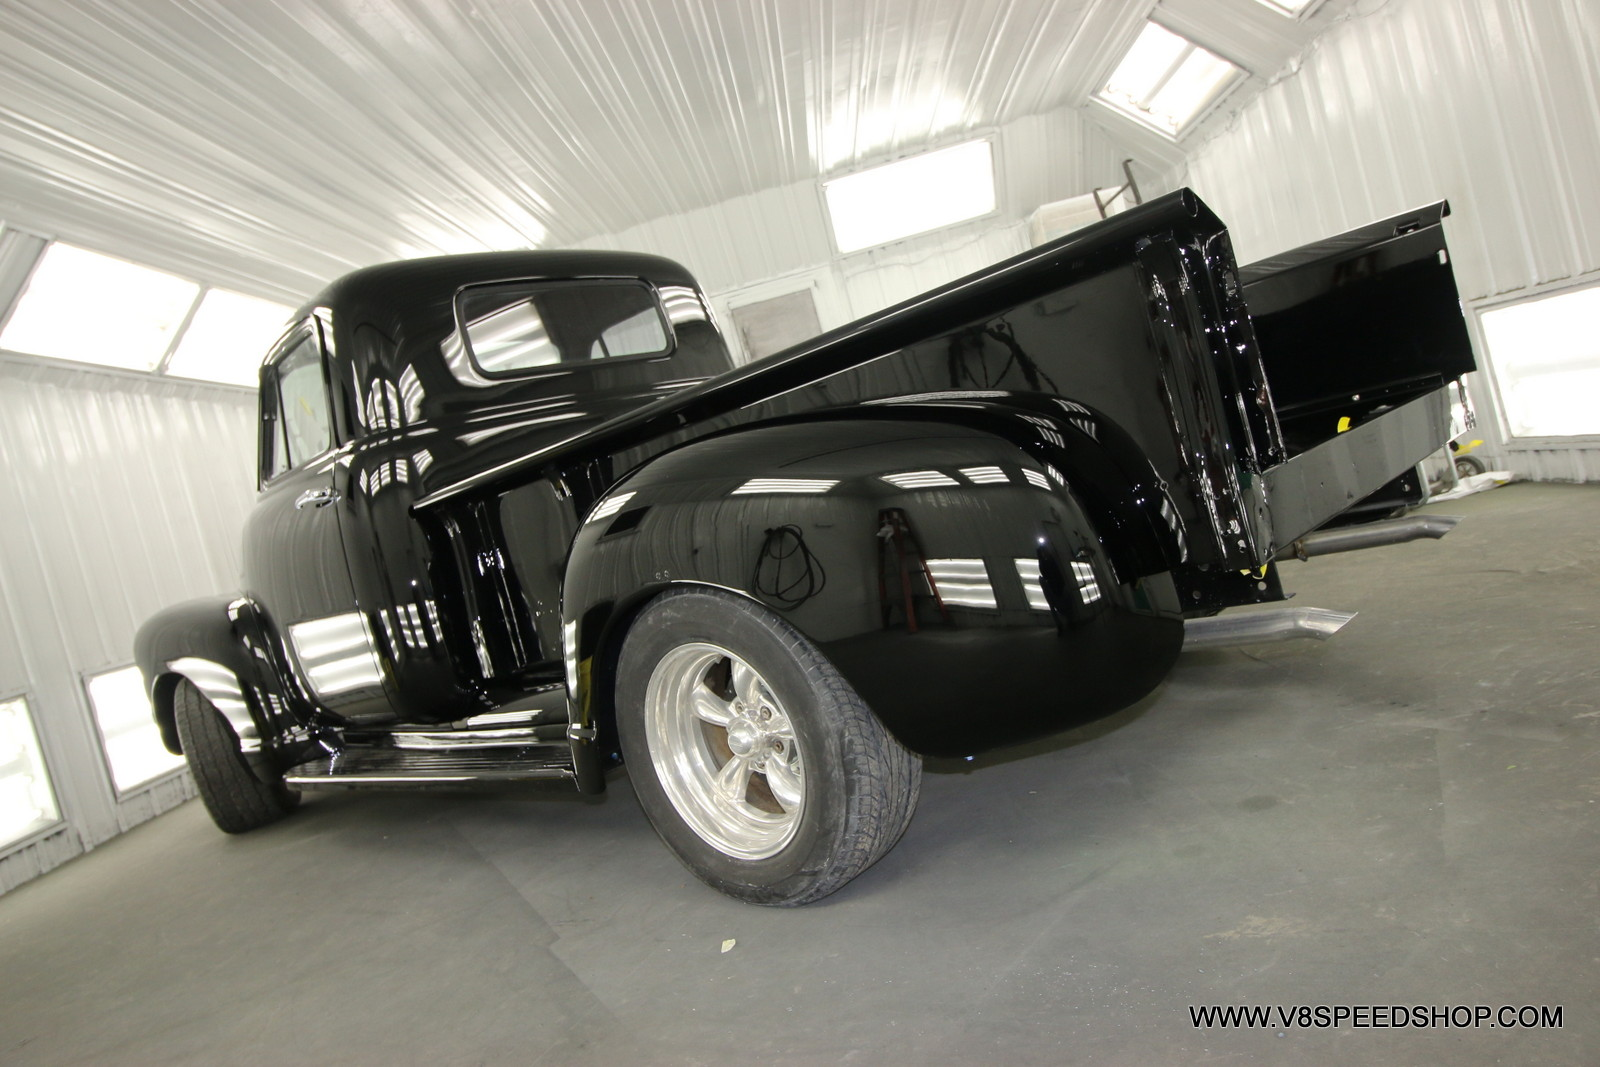 1951 Chevrolet Pickup Restoration at the V8 Speed and Resto Shop